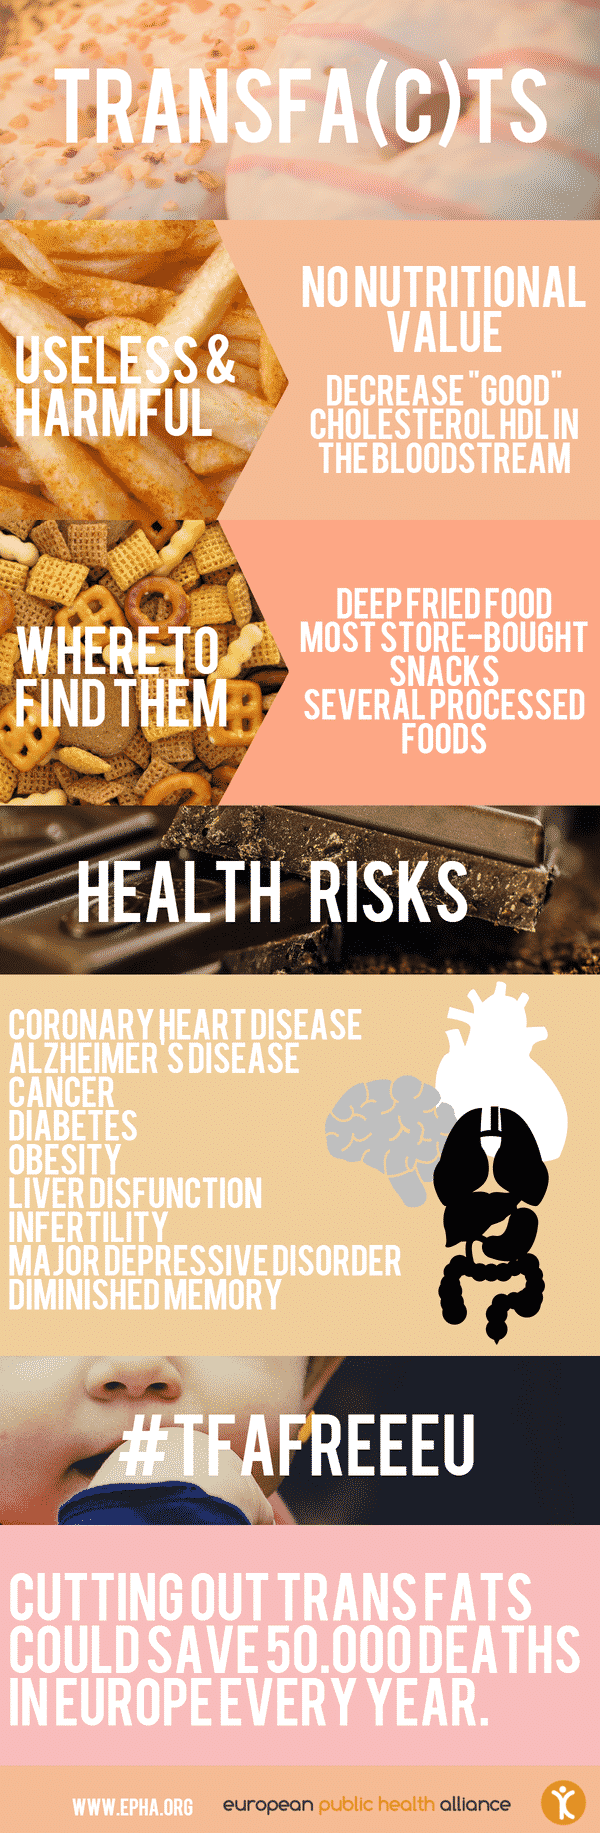 transfats facts infographic trans fats